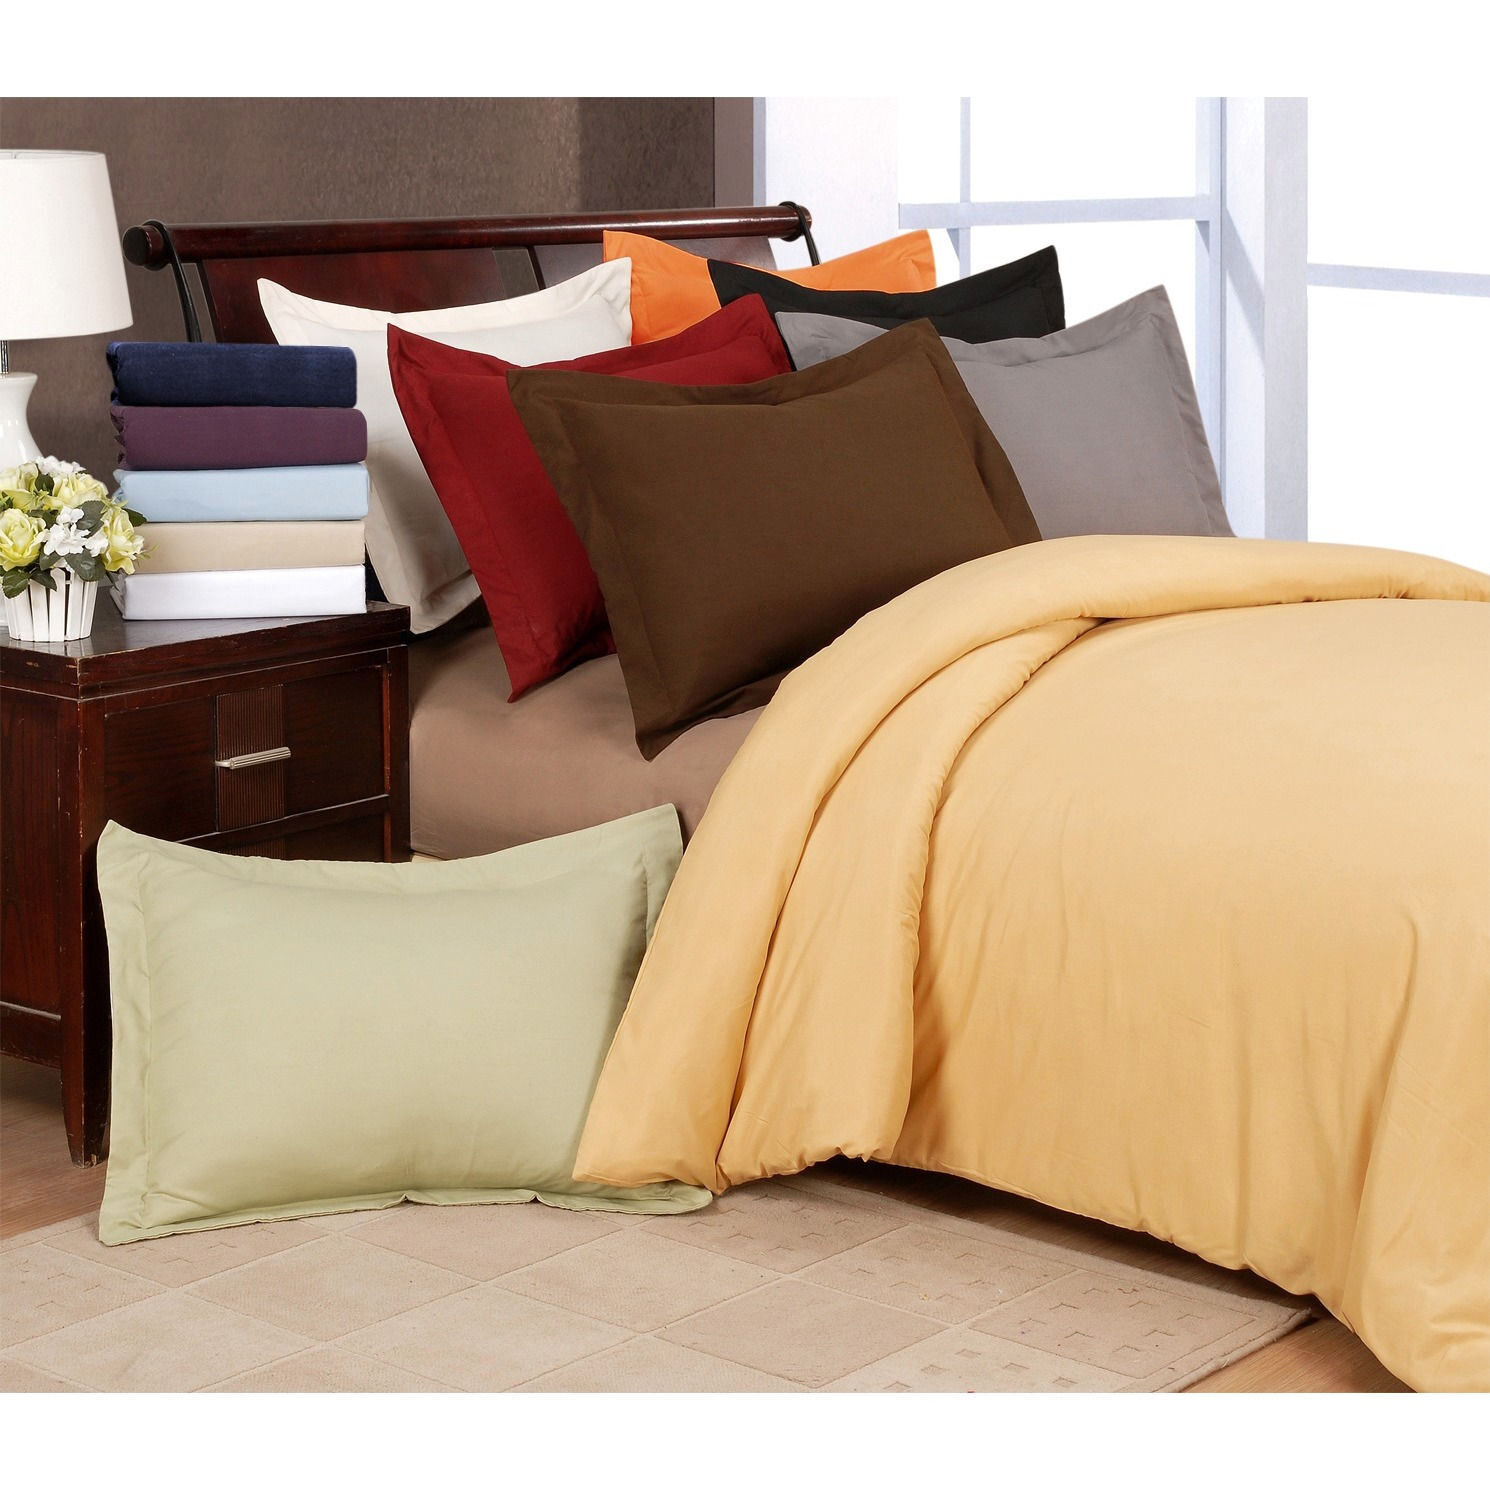 15 Inch Drop Bedskirts Twin Xl Queen King Size Bed Frame